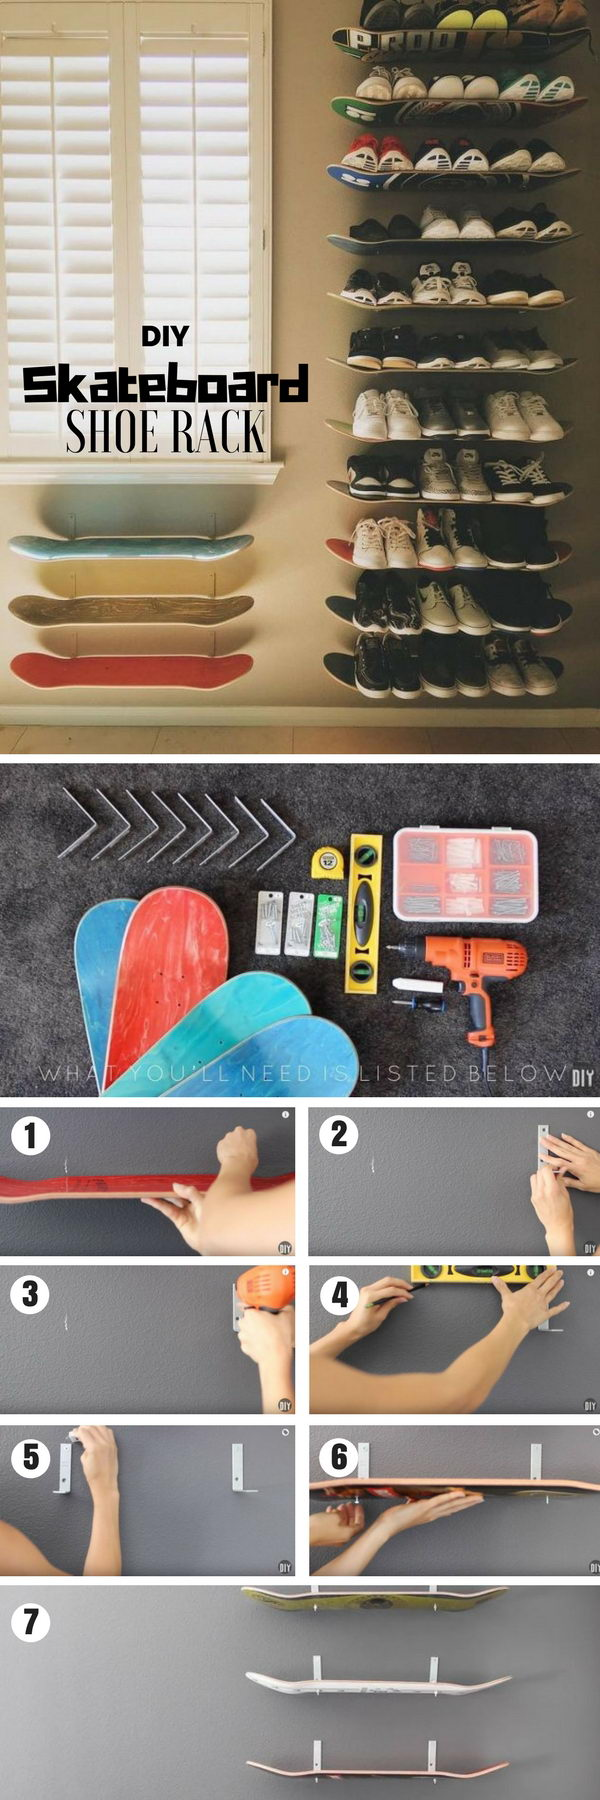 Skateboard Shoe Rack.